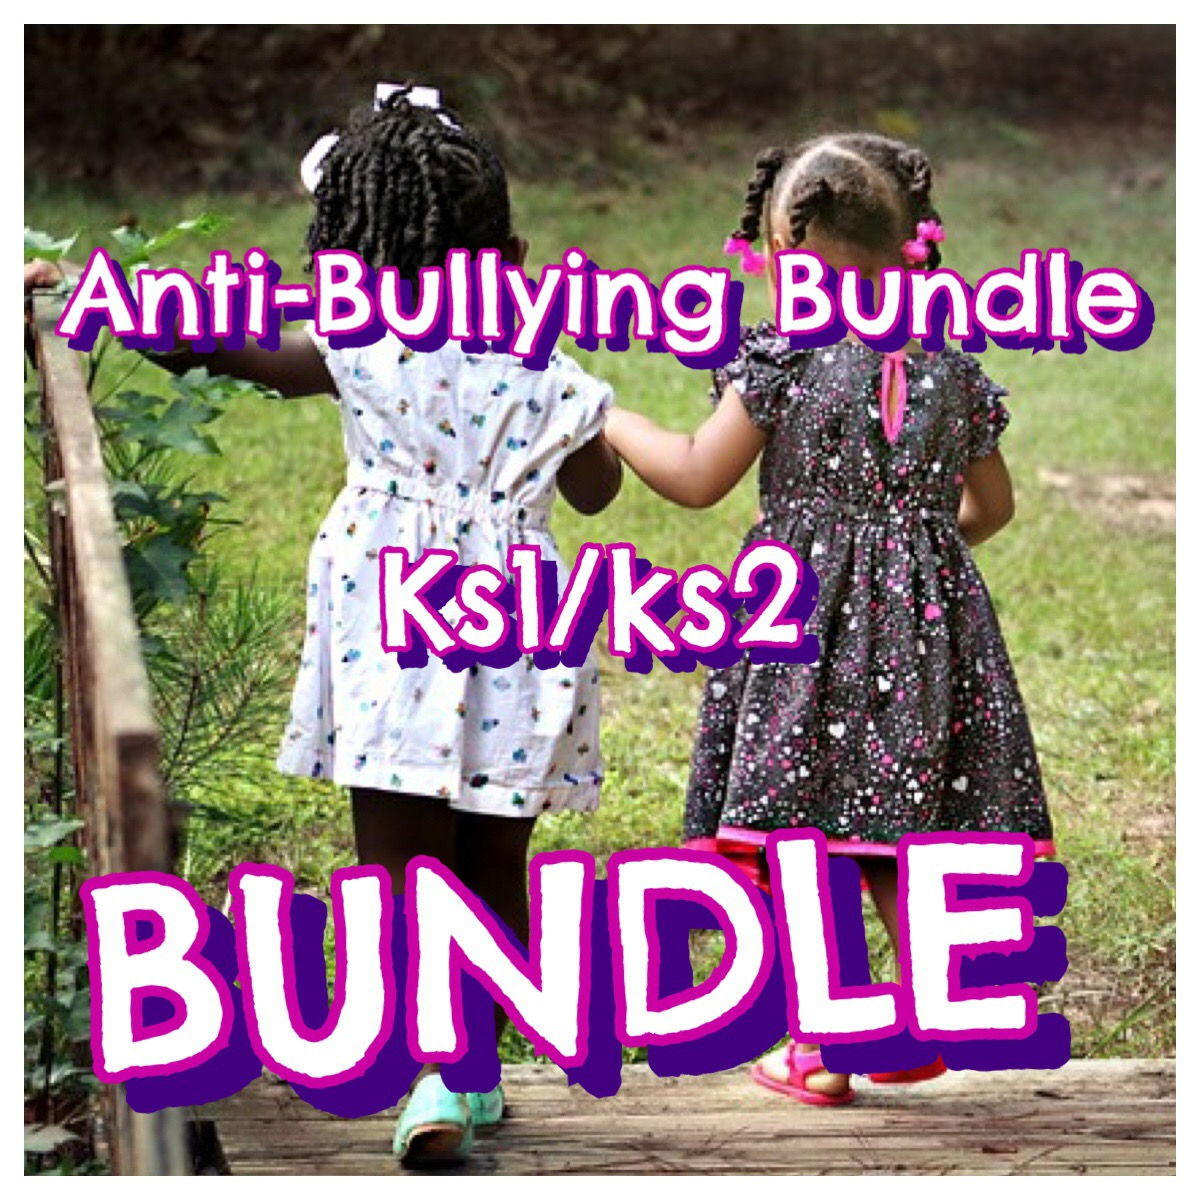 Anti-Bullying Bundle for KS1/KS2